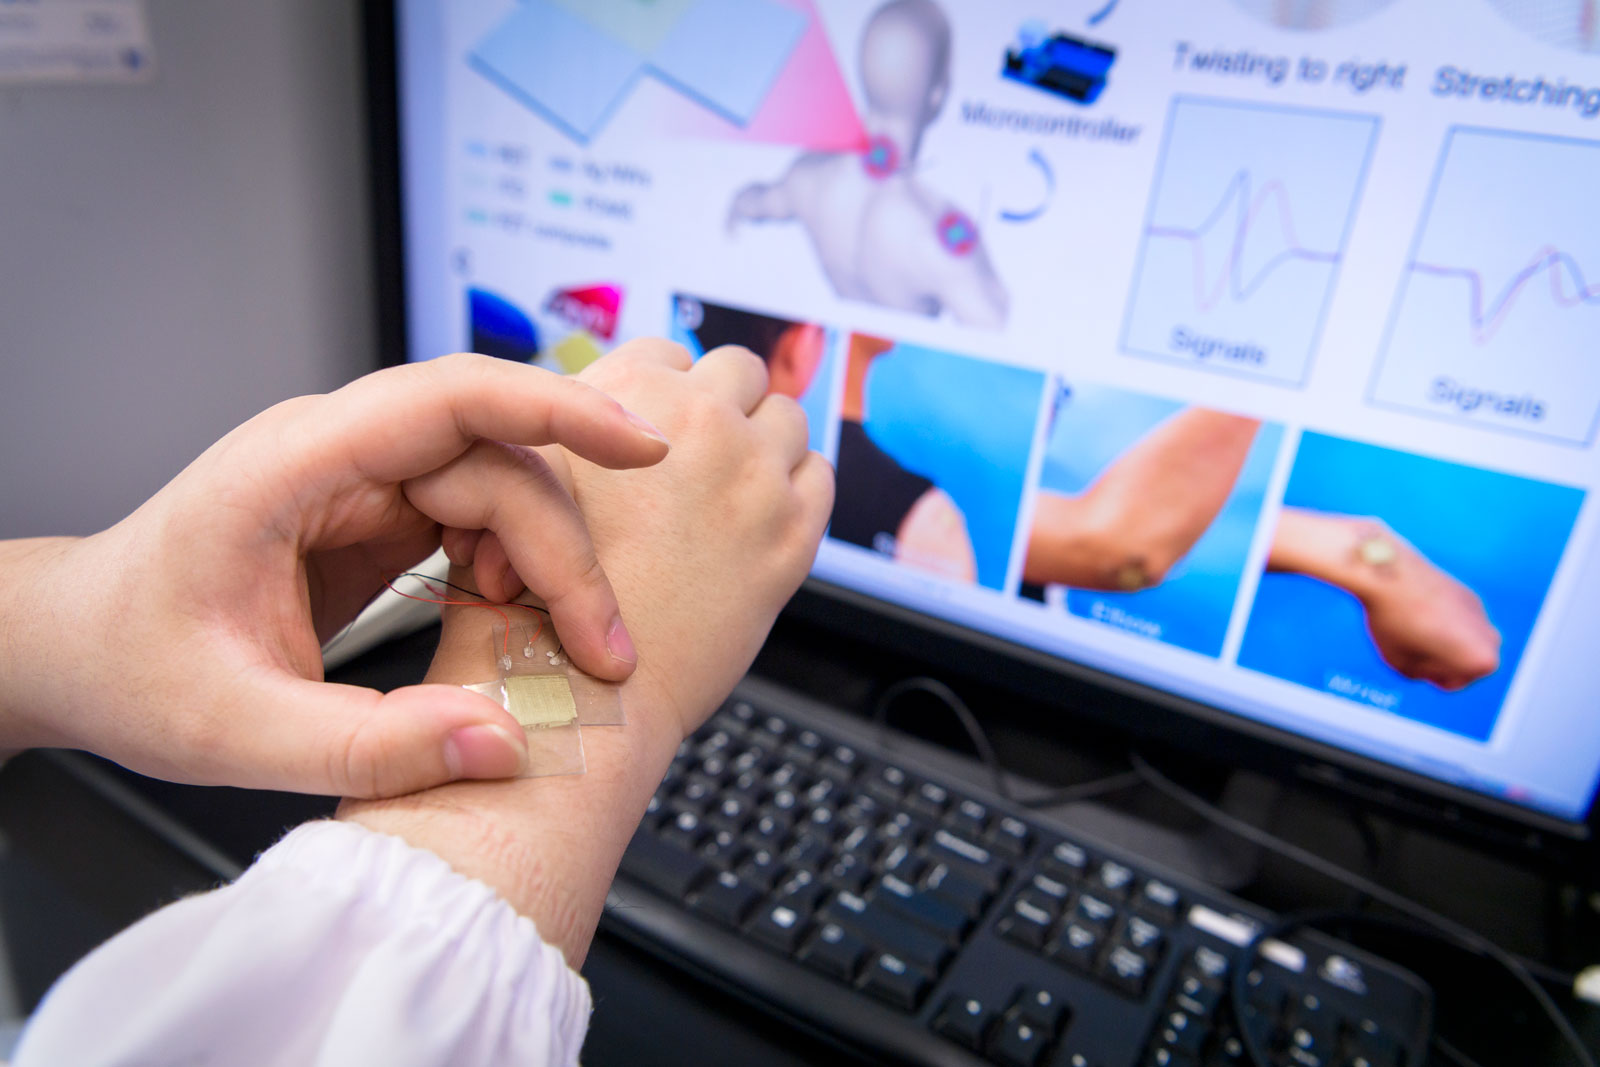 The kirigami-structured sensor can fully monitor joint movements when attached to the human body.